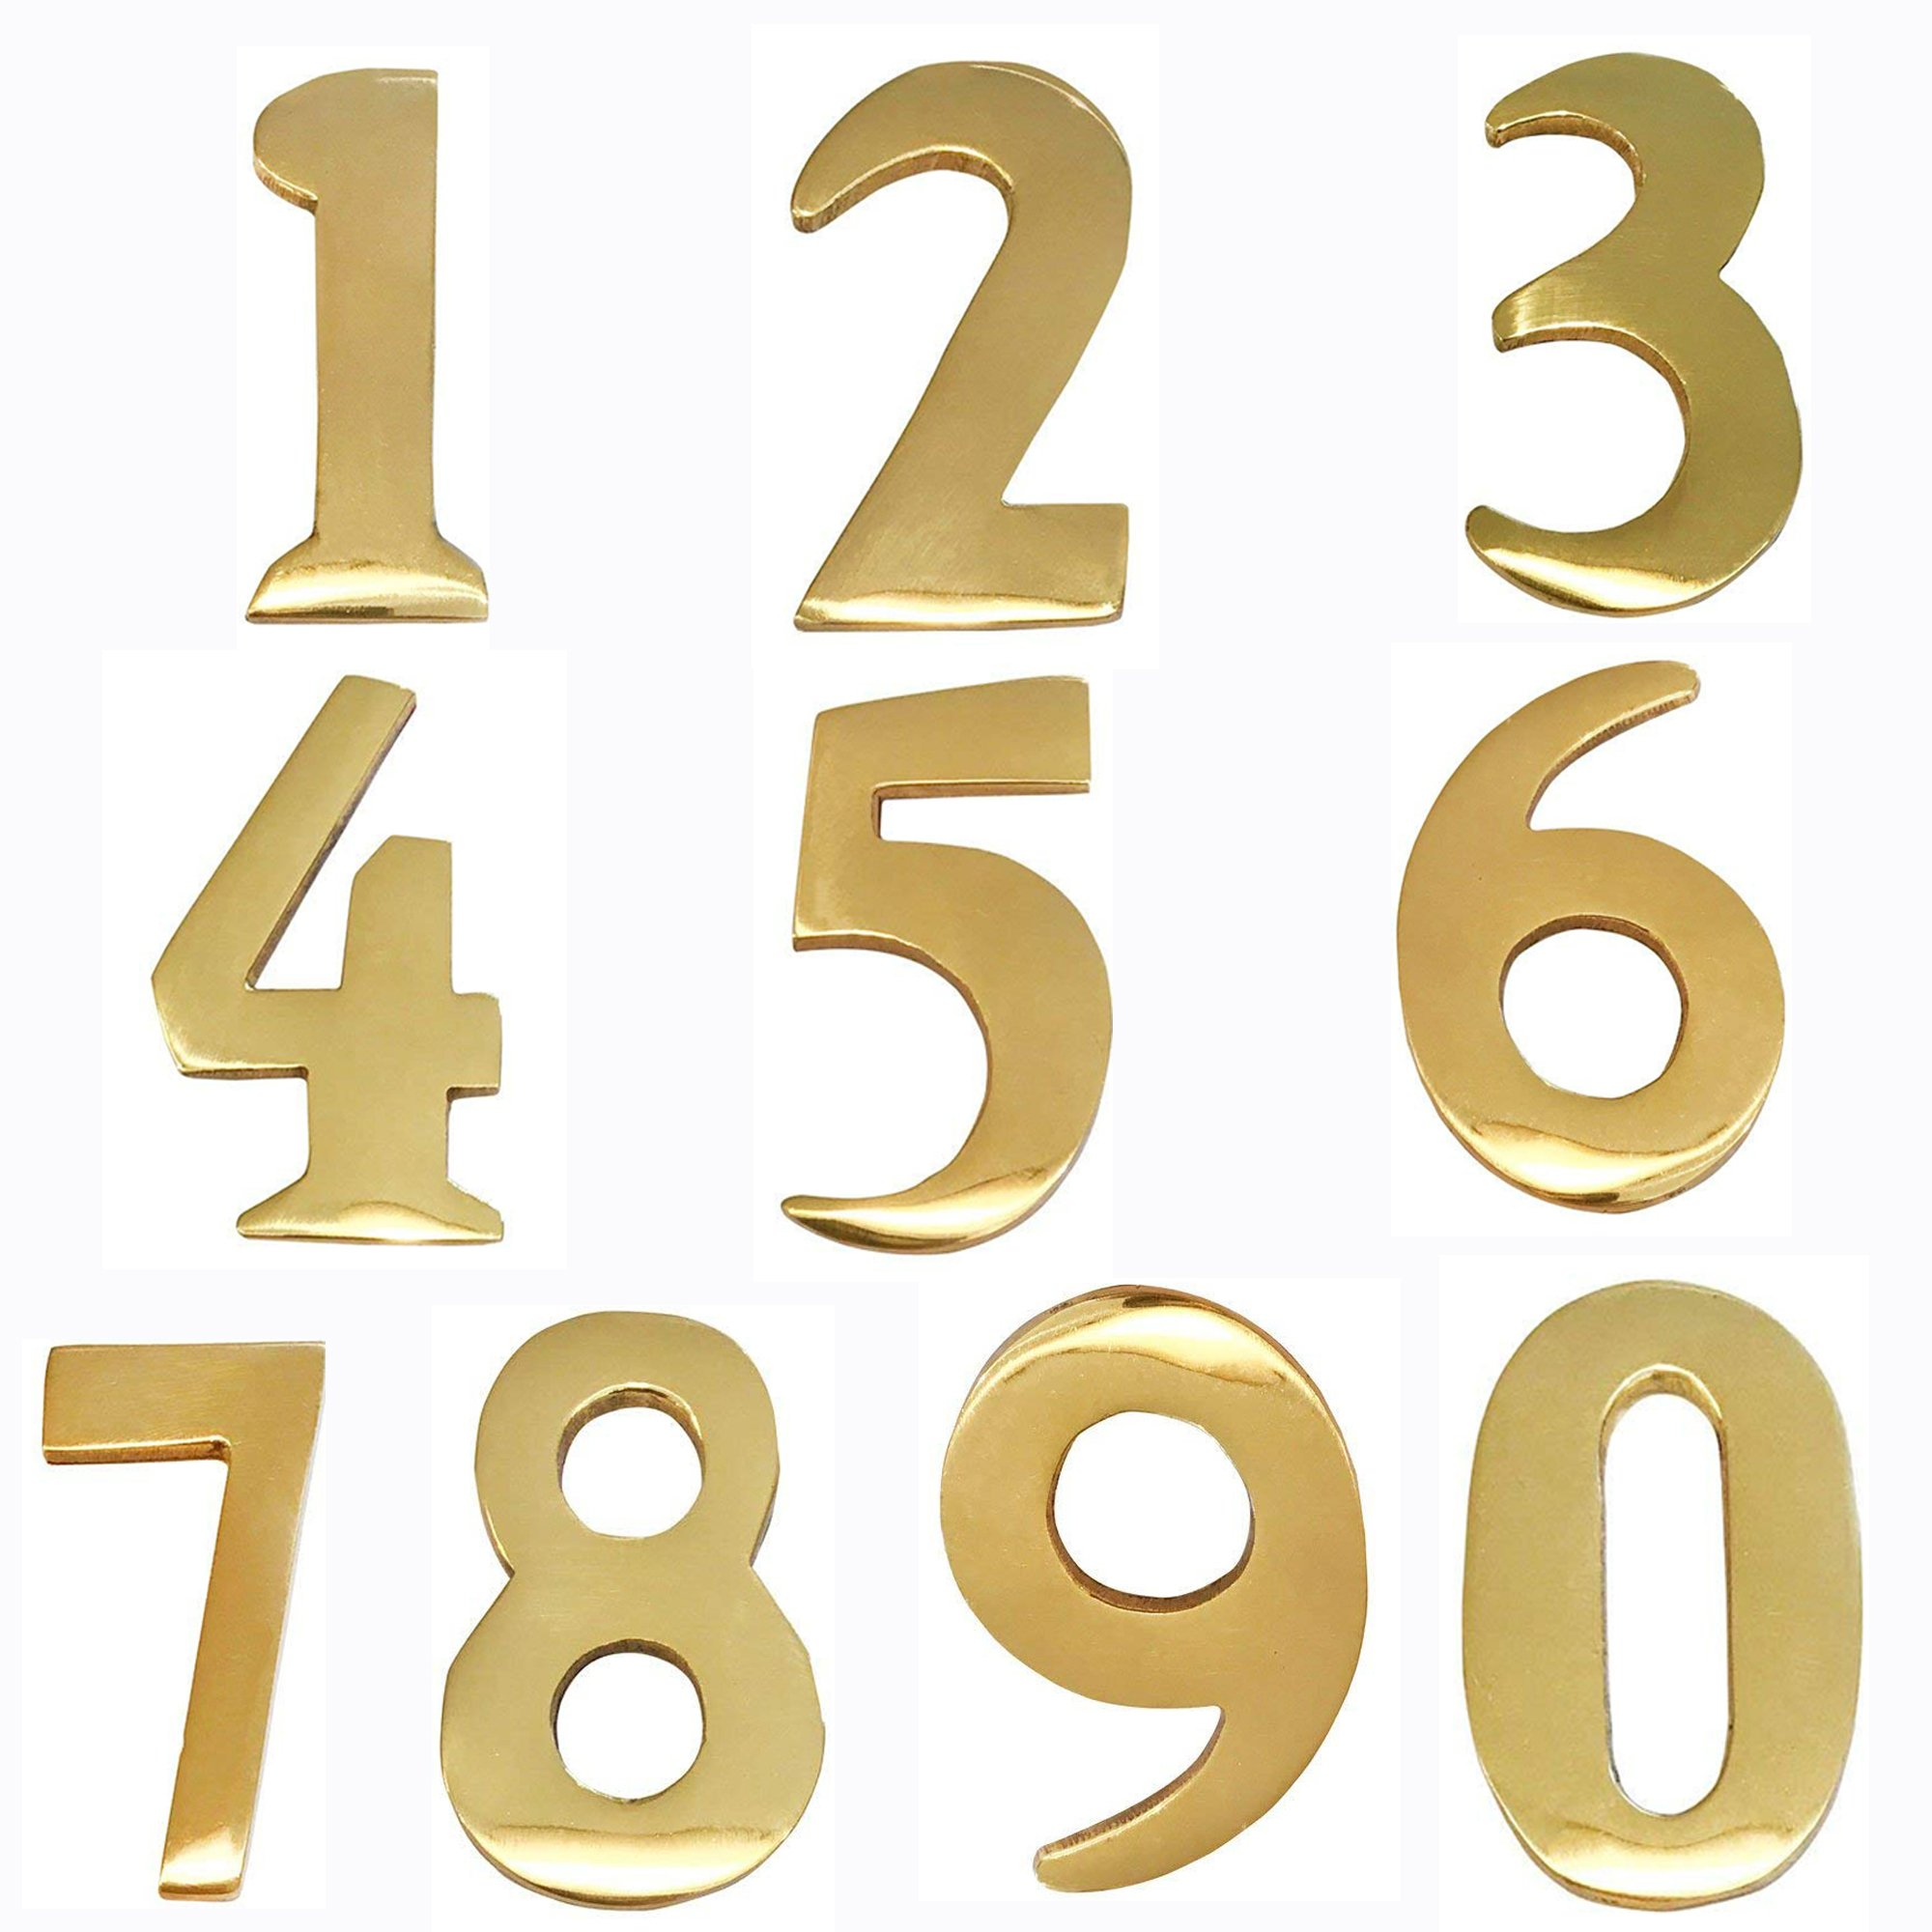 ADDRESSES OF DISTINCTION 8 Customized 2-Inch Brass Mailbox Numbers - Pick Your Numbers - Self Adhesive - Williamsburg Font - Won't Tarnish - Numbering for Address Plaque by ADDRESSES OF DISTINCTION